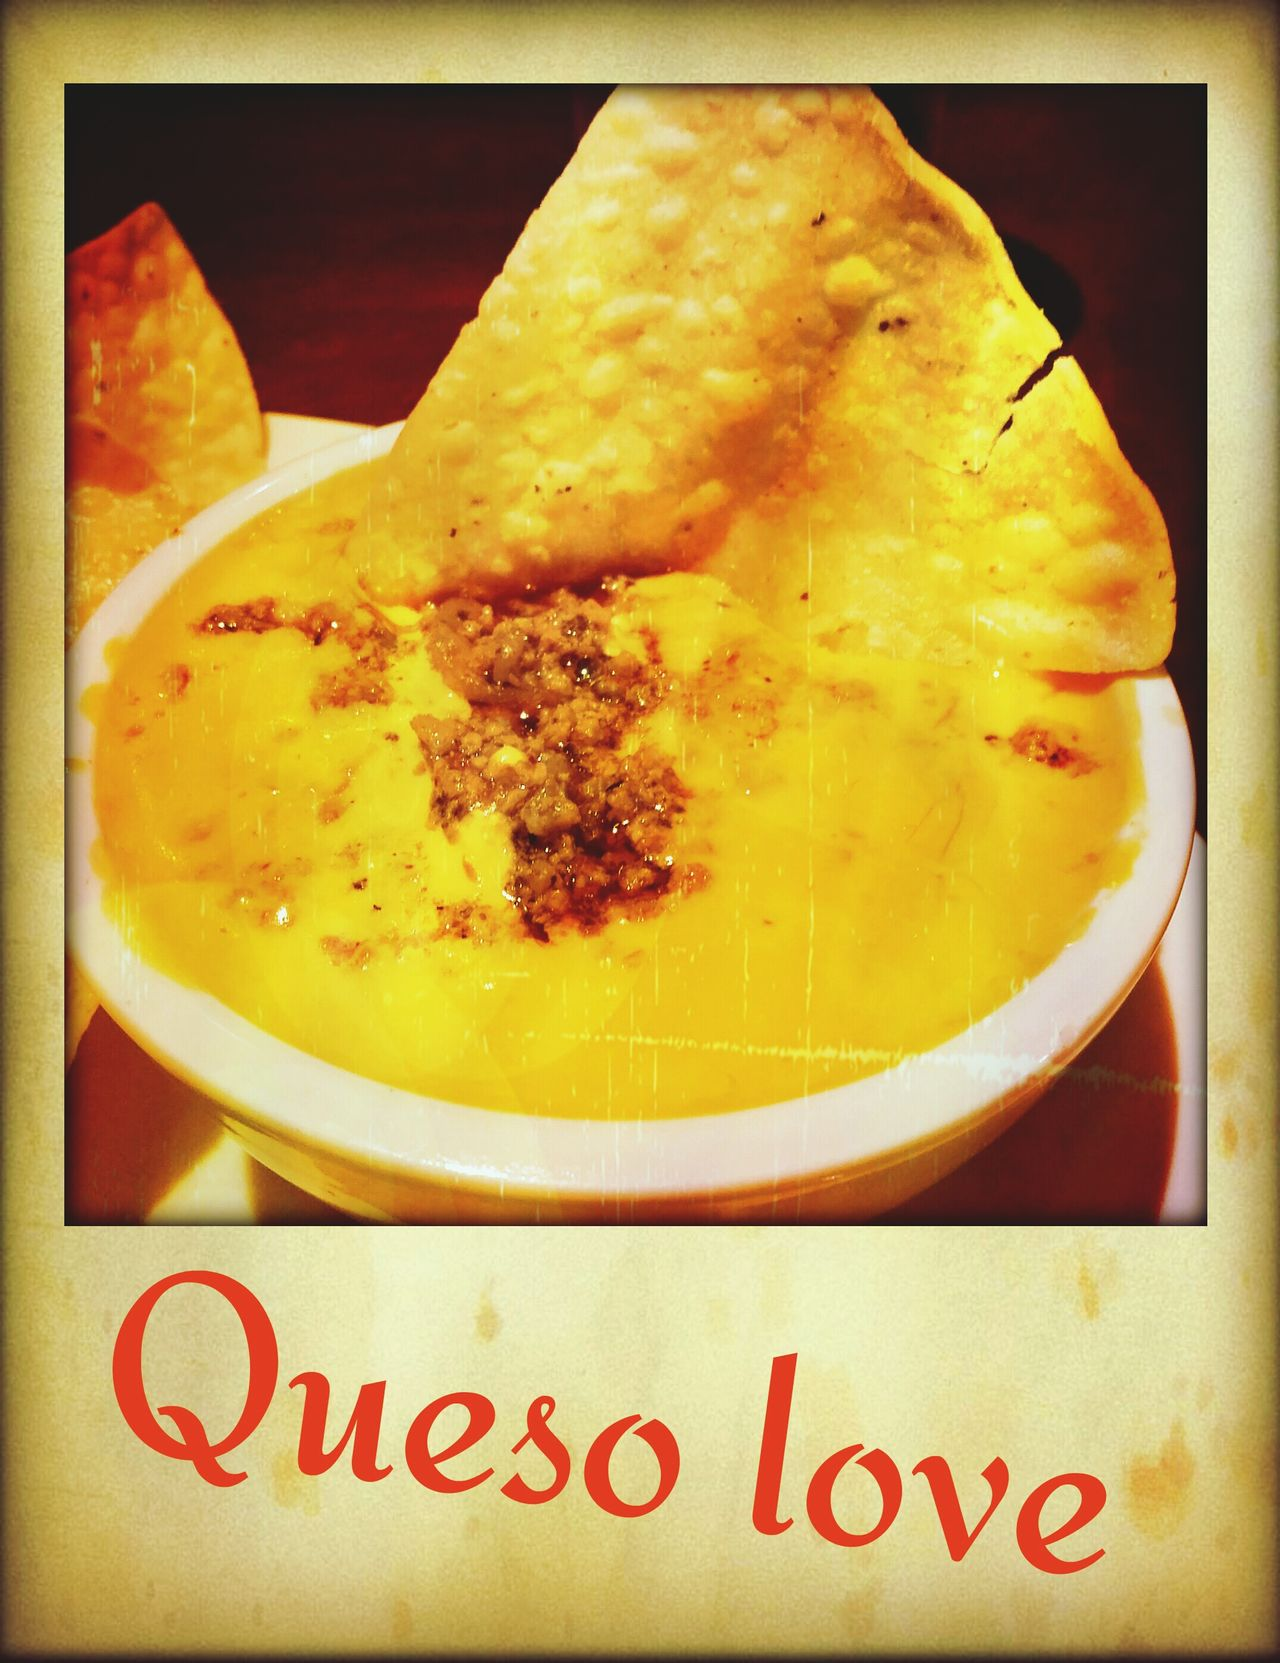 Do you love Queso dip as much as I do? I took this photo while eating at Cheddars one evening. Food Porn Foodphotography Food Porn Awards Foodgasm Food And Drink Food♡ Queso Chips And Dip Close-up Yummy Yellow No People First Eyeem Photo